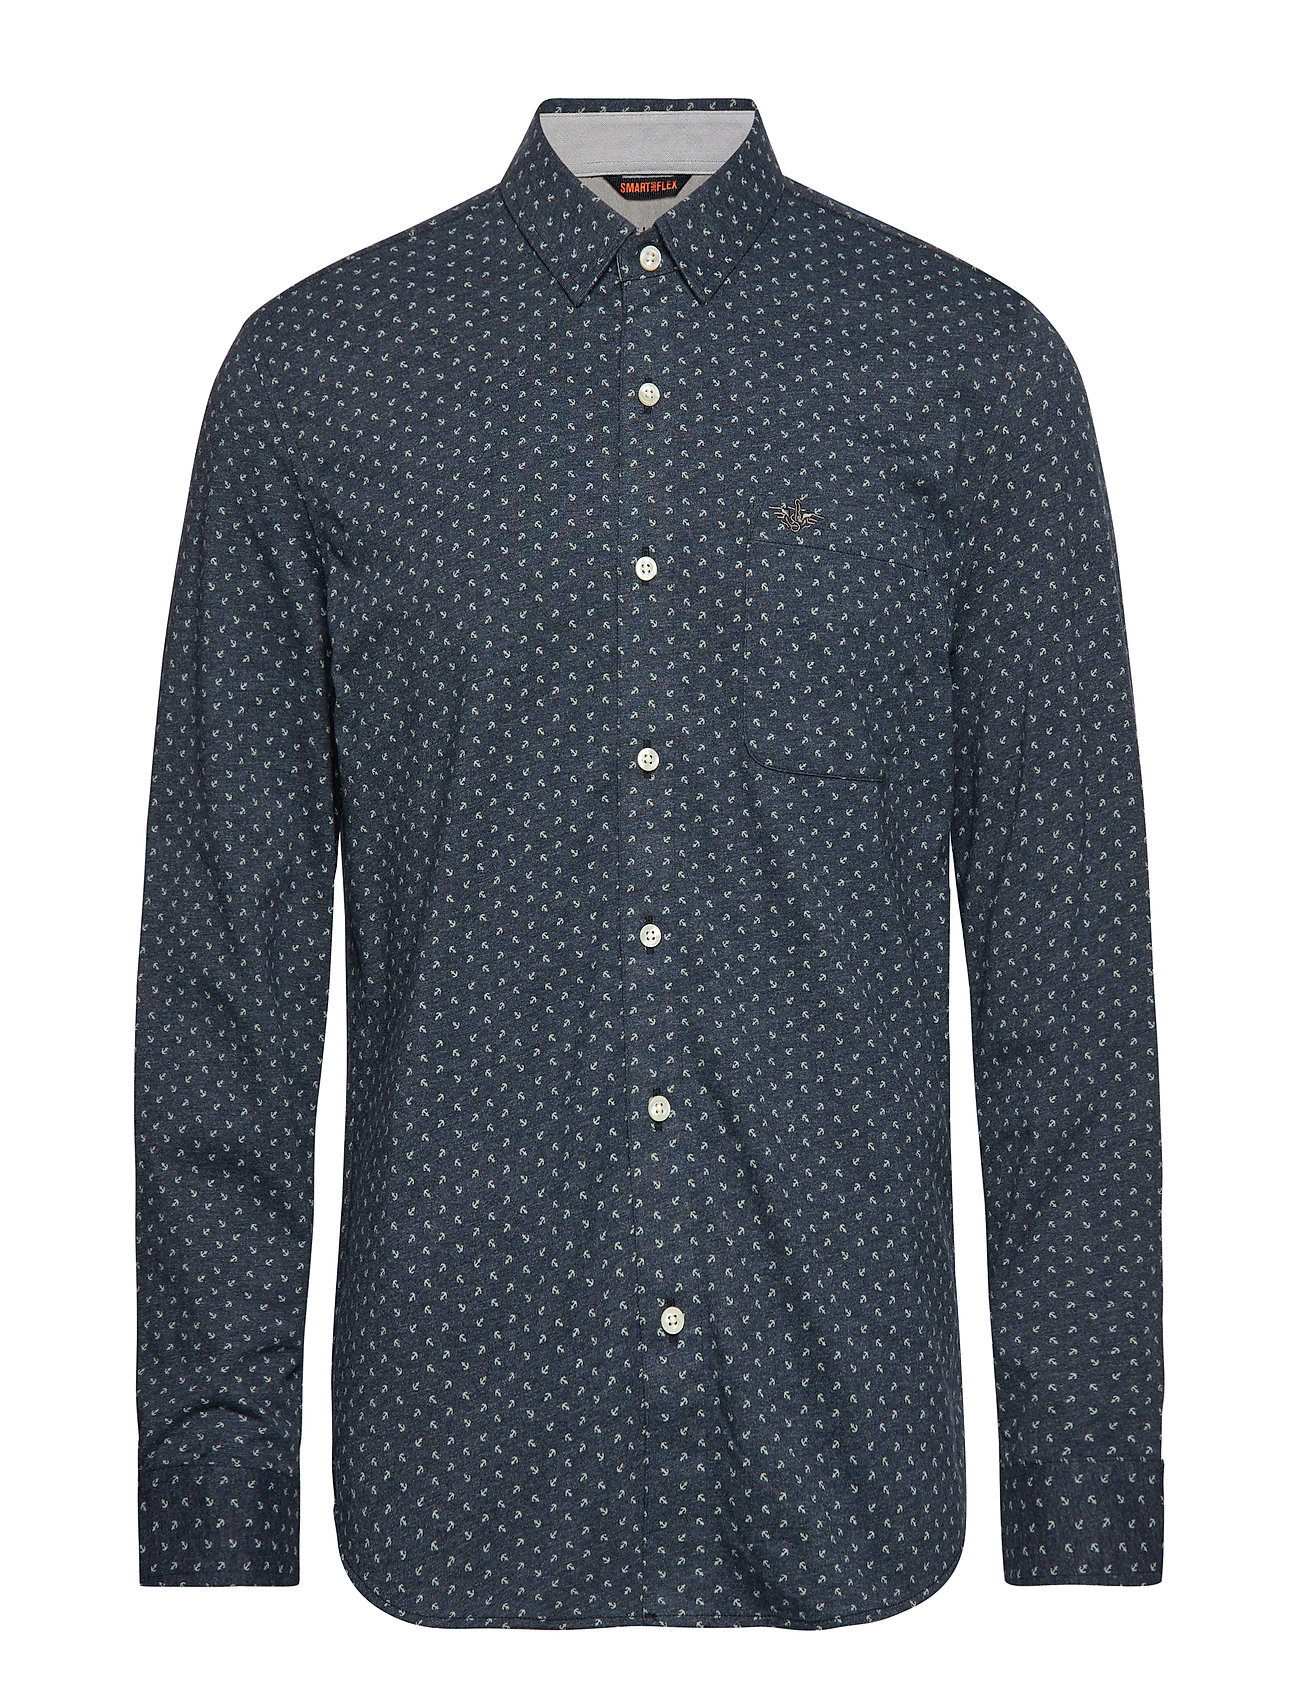 Dockers ALPHA 360 BUTTON UP BURKE 360 - BLUES